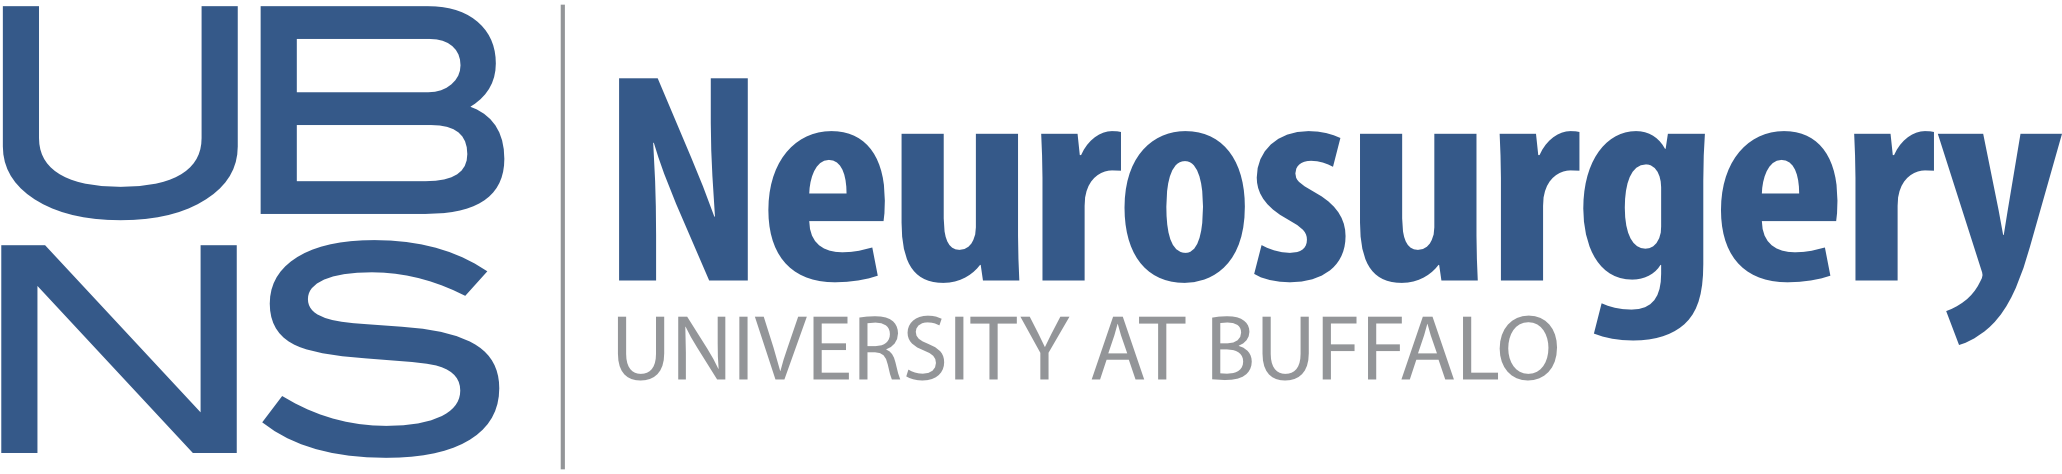 University At Buffalo Neurosurgery Logo